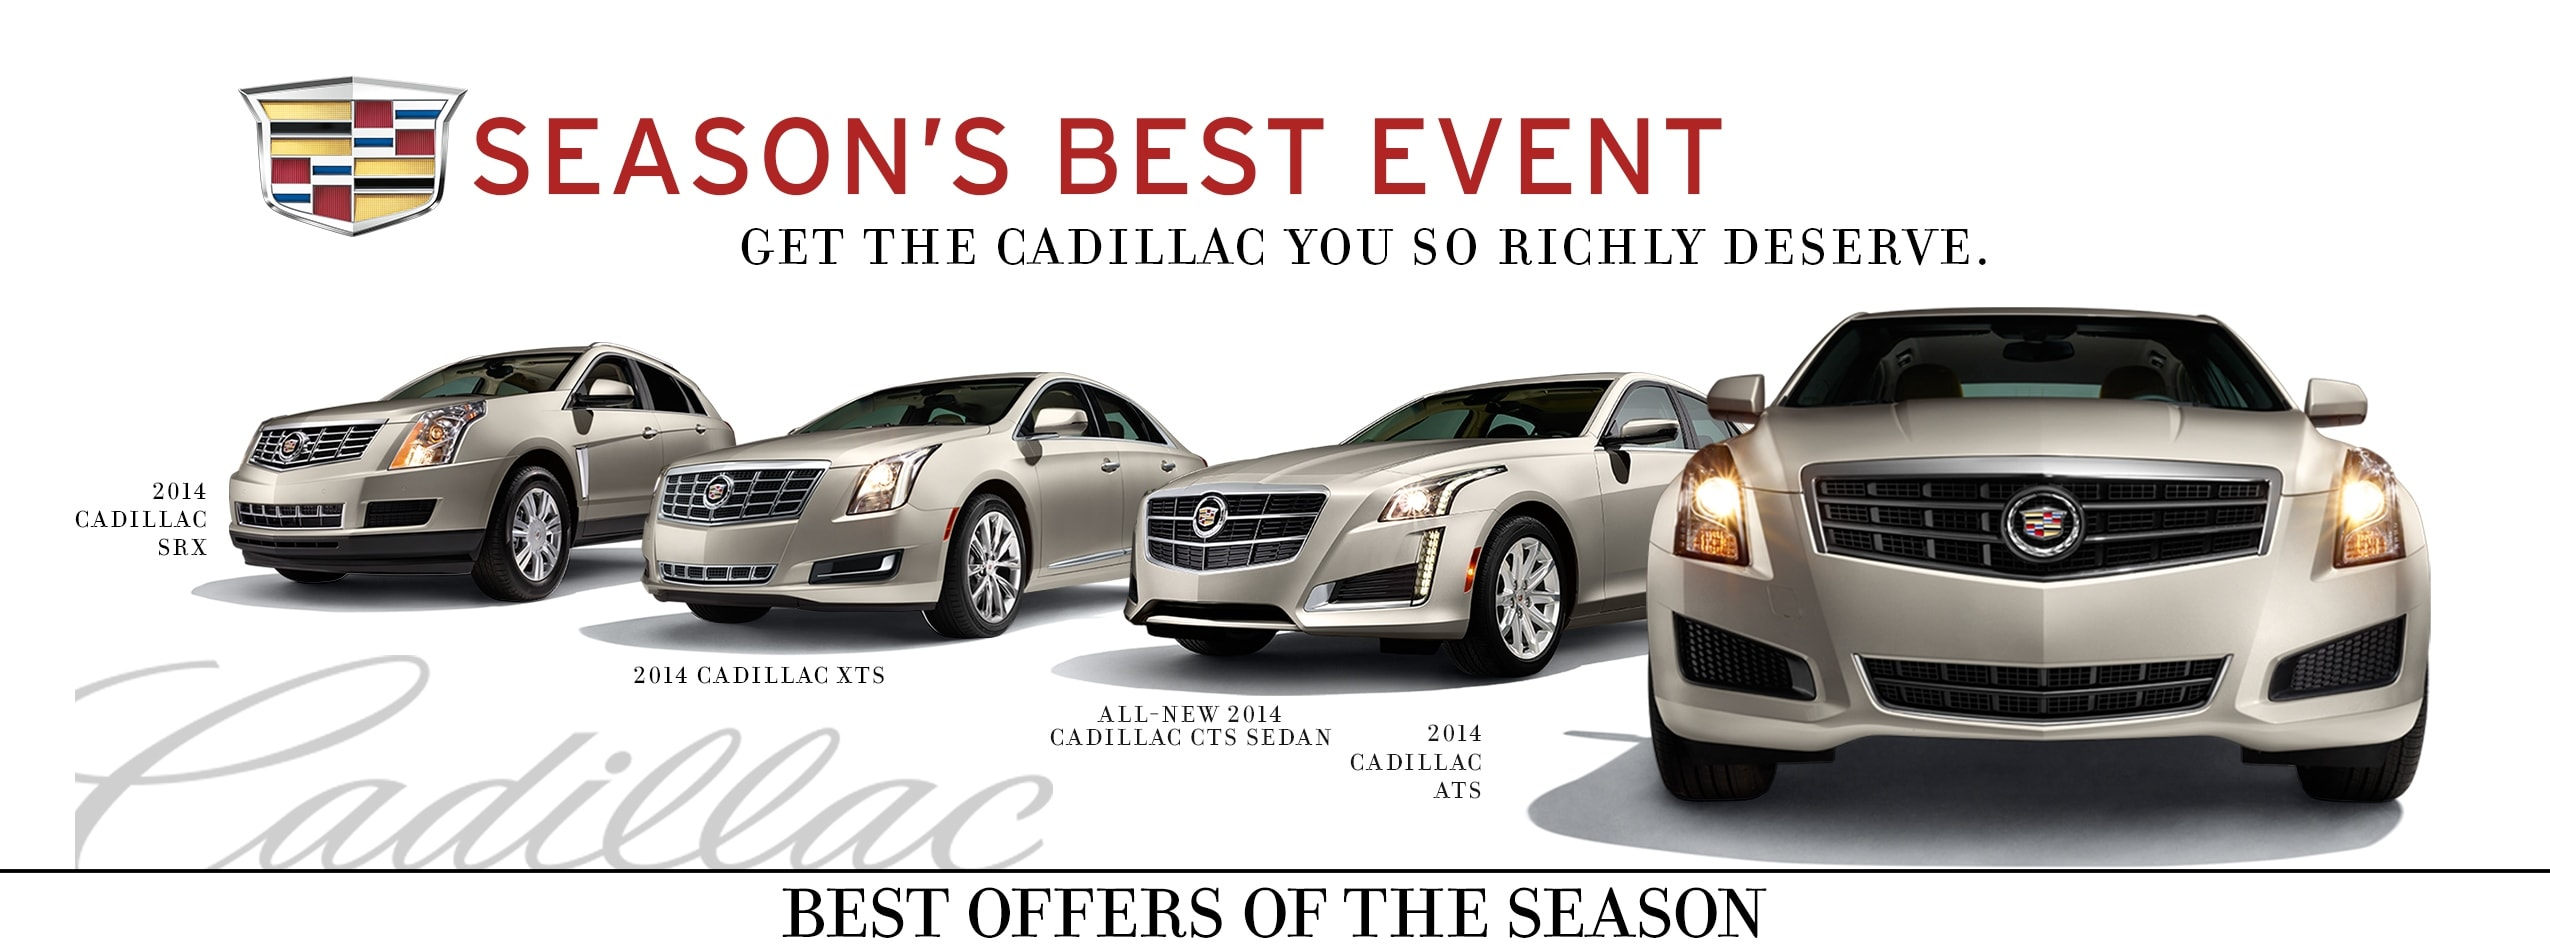 Cadillac S Season S Best Event Dave Smith Motors